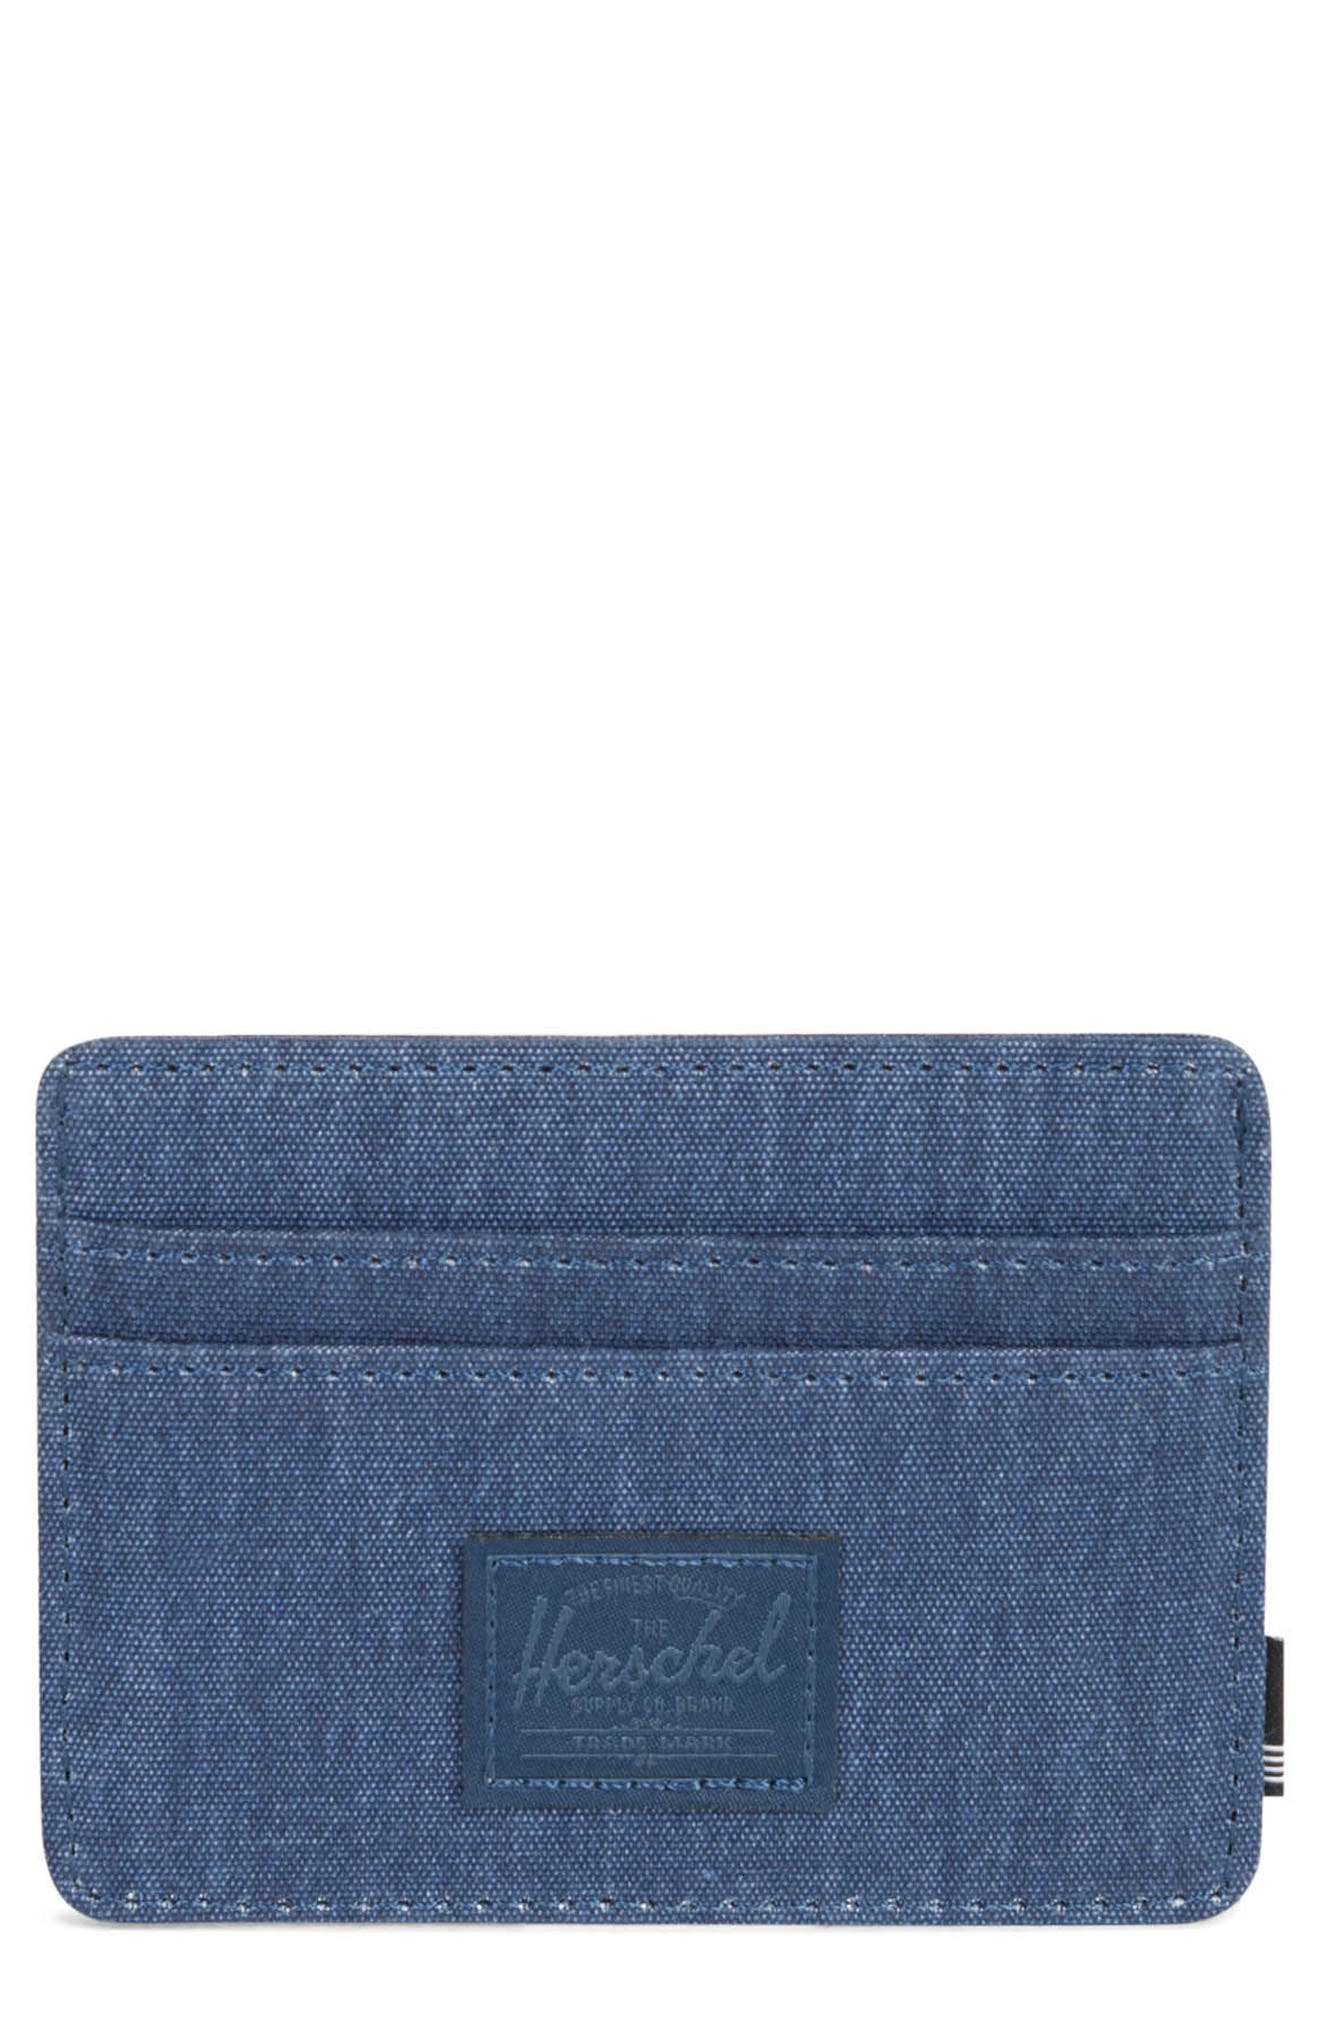 Charlie Card Case,                         Main,                         color, Peacoat